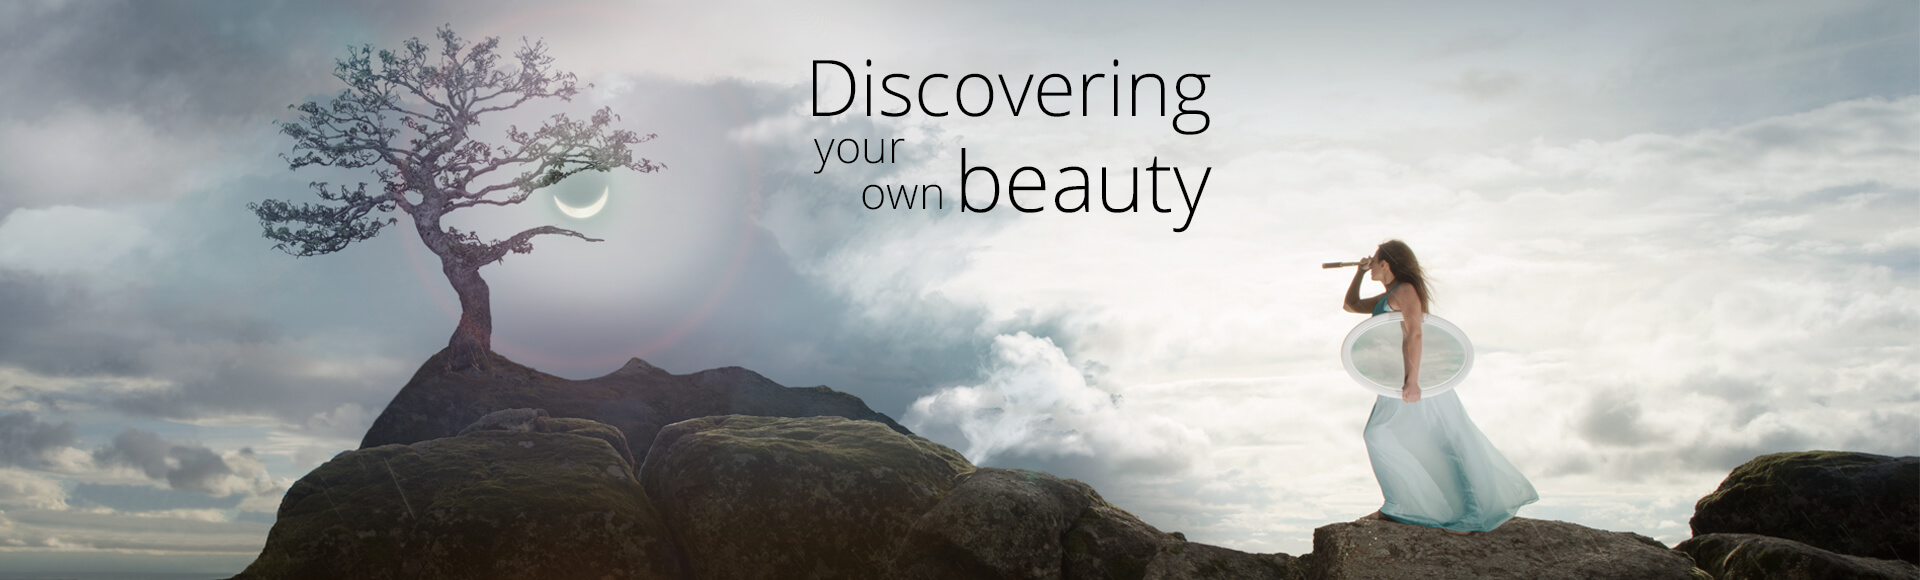 Disovering your own beauty